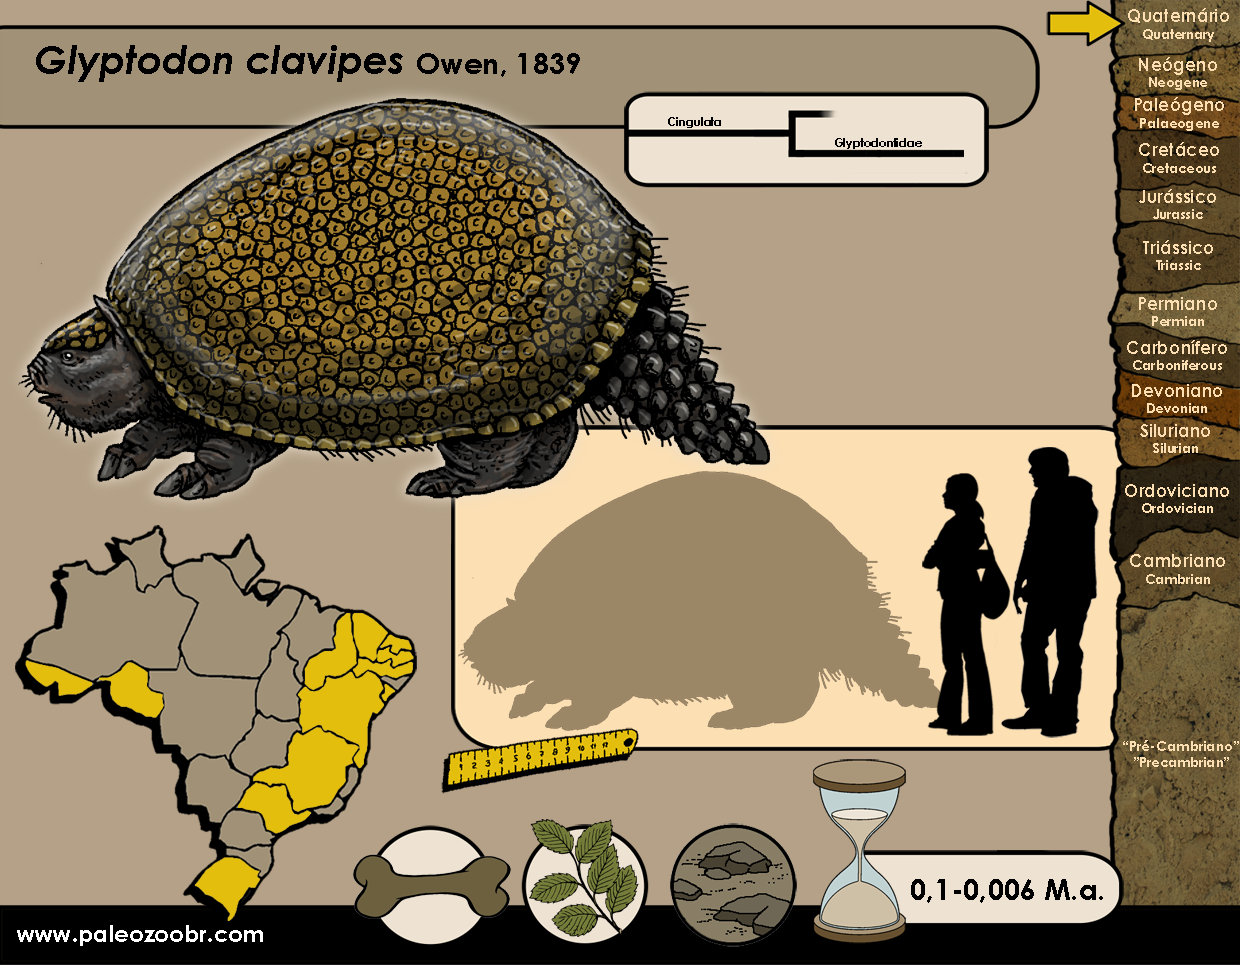 Glyptodon clavipes